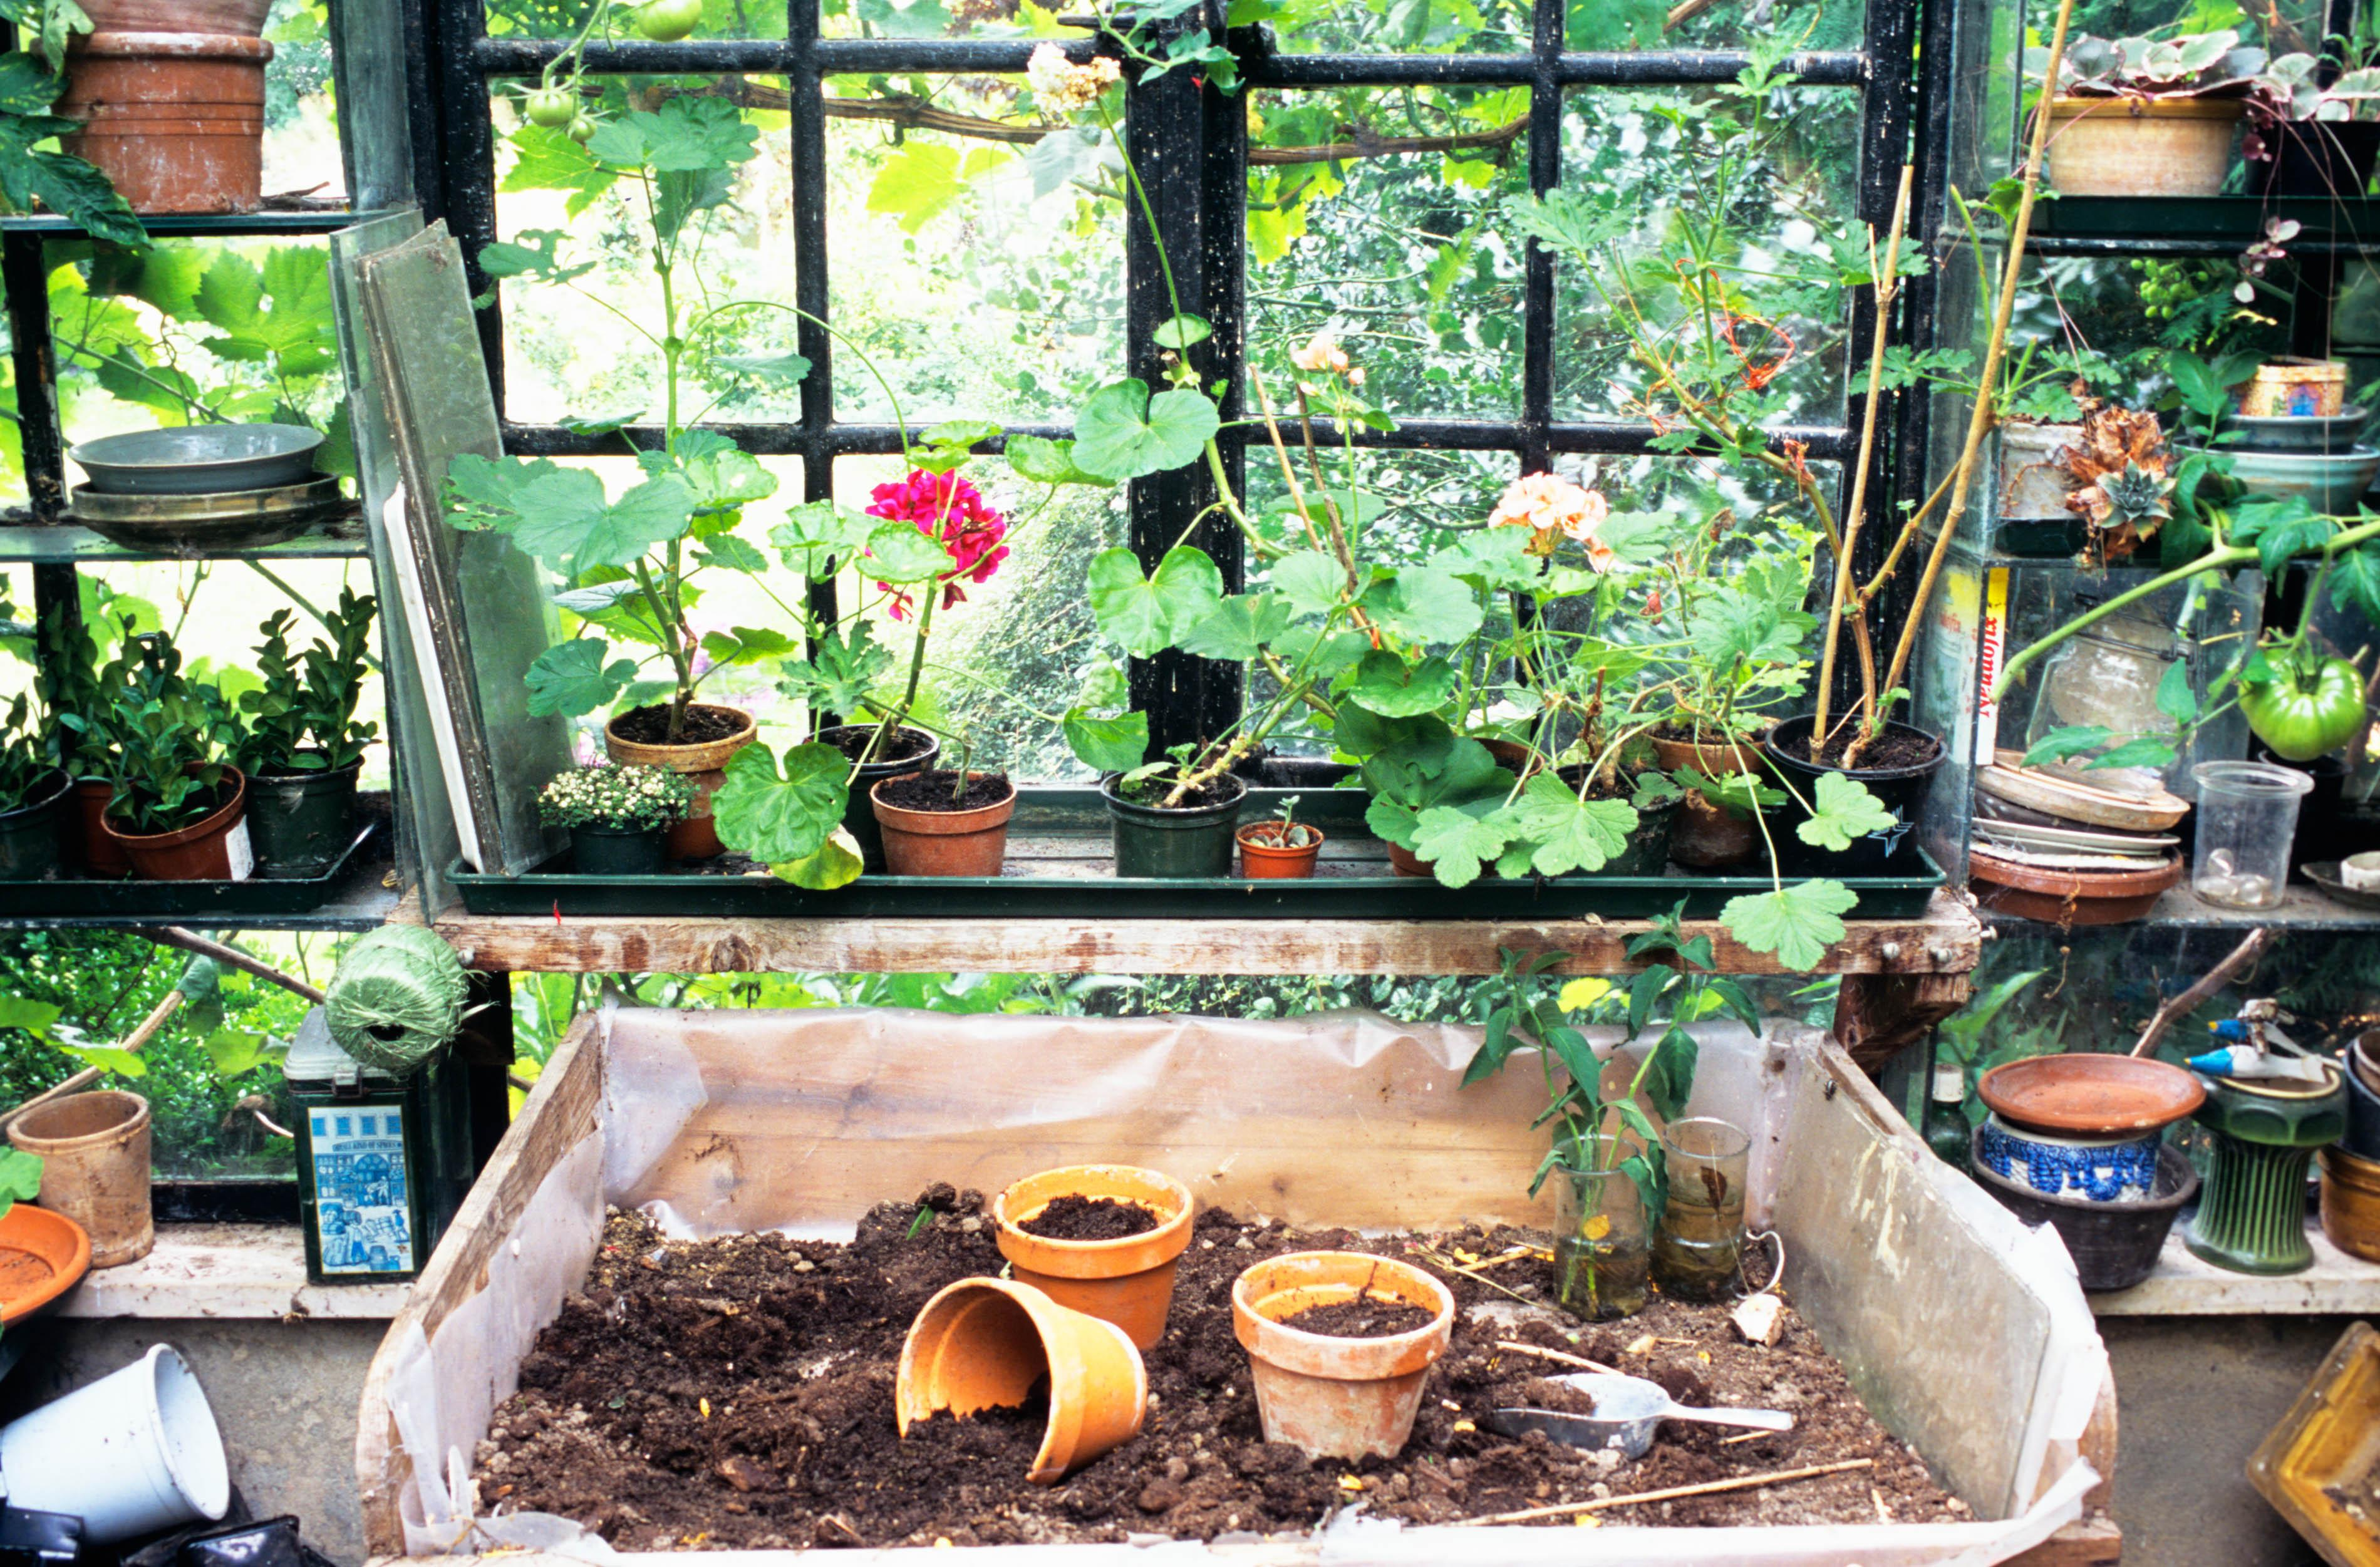 How to reuse old compost